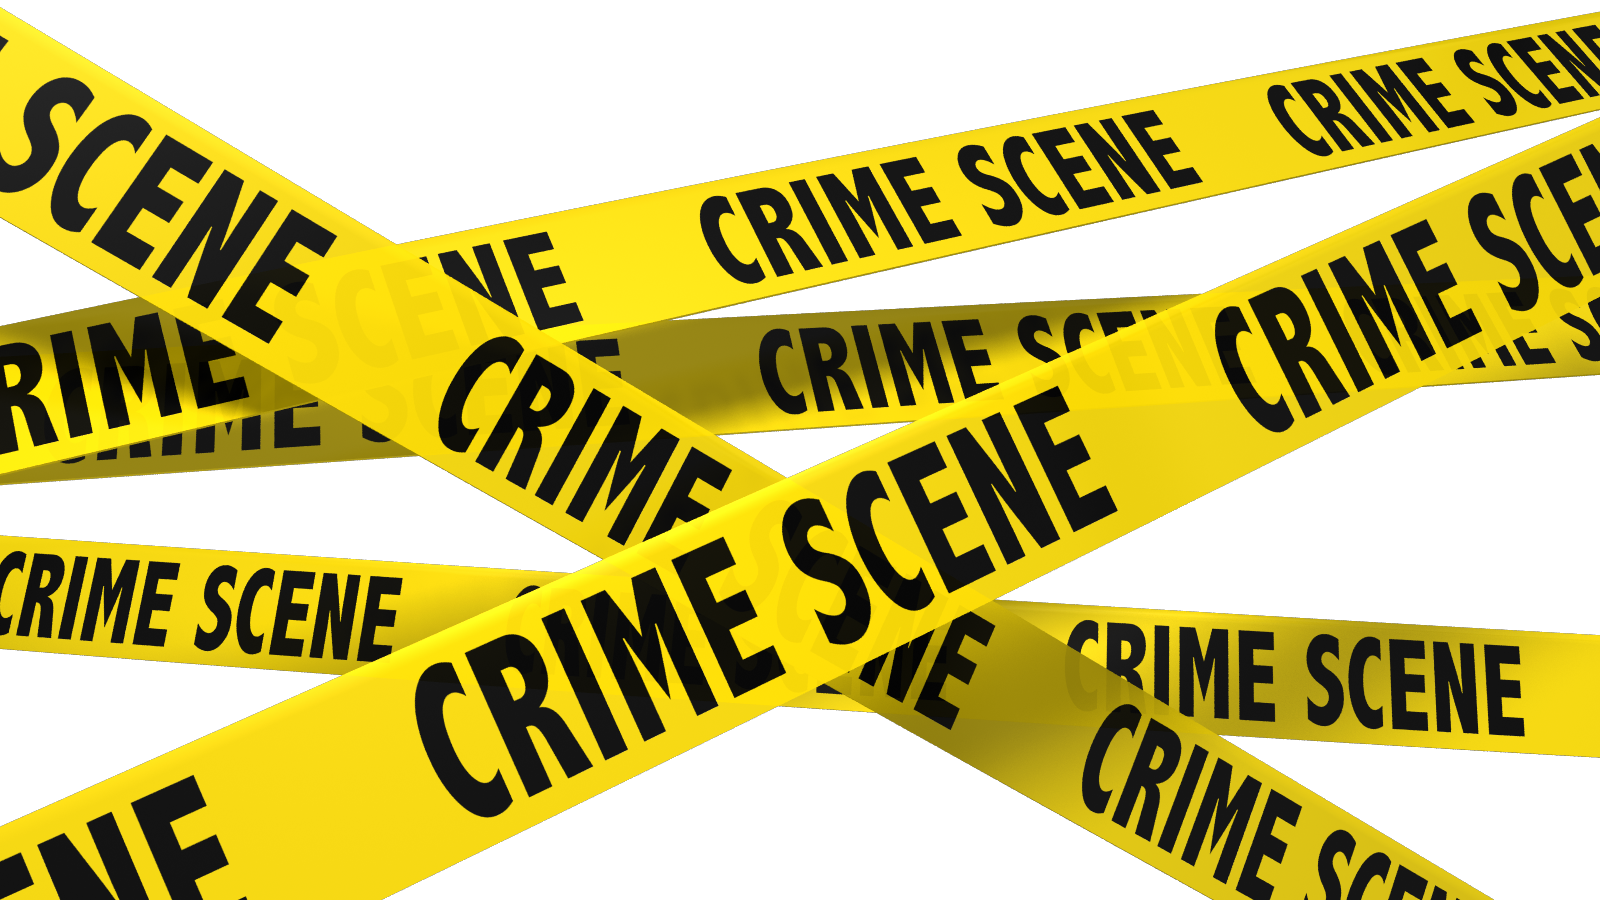 Police png images free. Tape clipart clear image transparent download